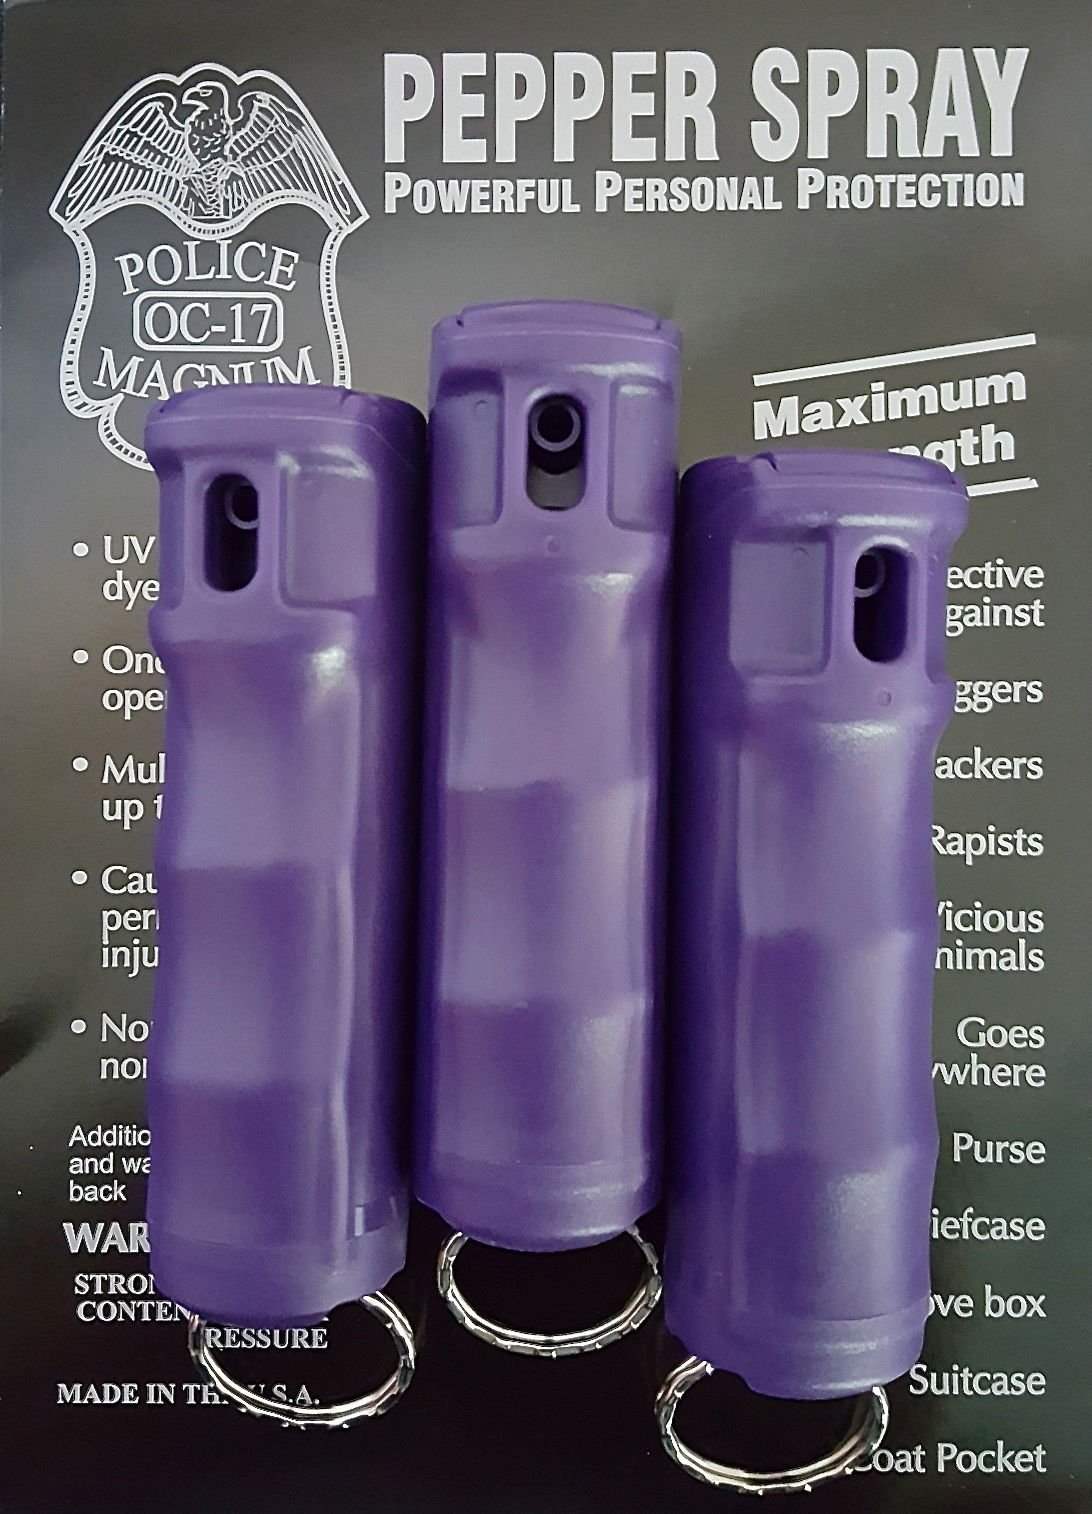 Police MAGNUM 3 pack PEPPER SPRAY 1/2oz PURPLE Flip Top Molded Keychain Security Self Defense Strength